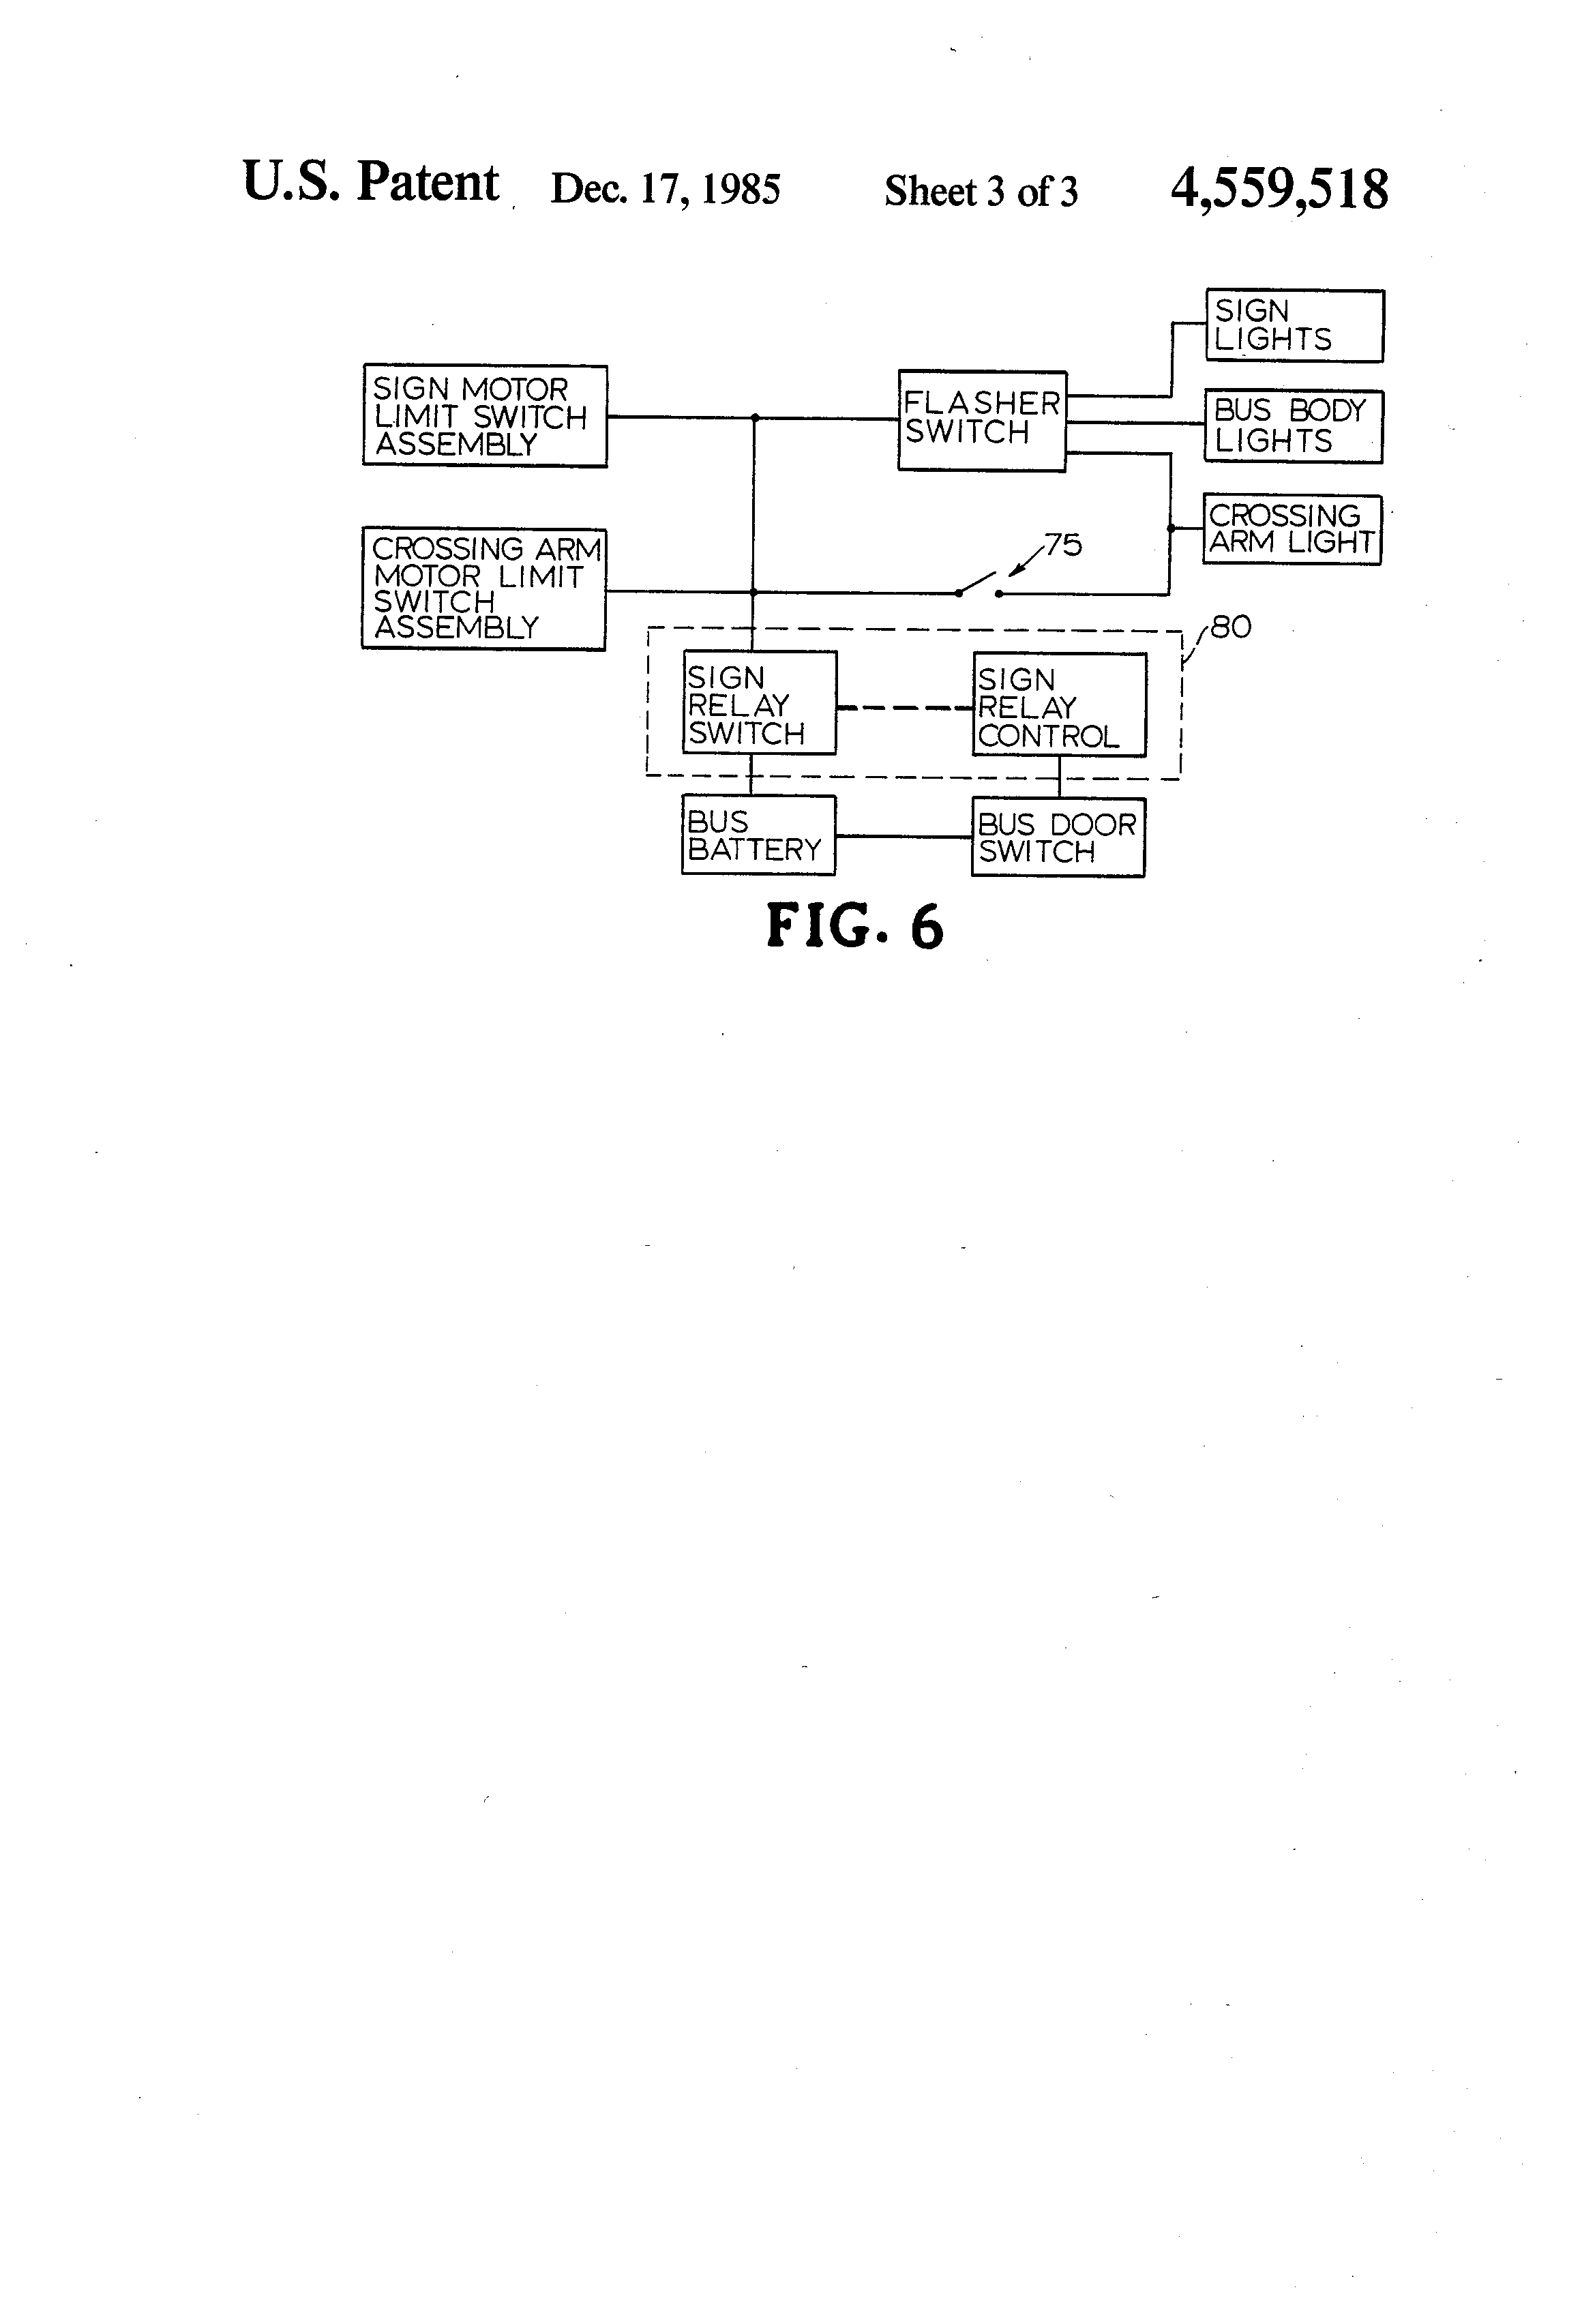 patent us school bus stop sign and crossing arm apparatus patent drawing